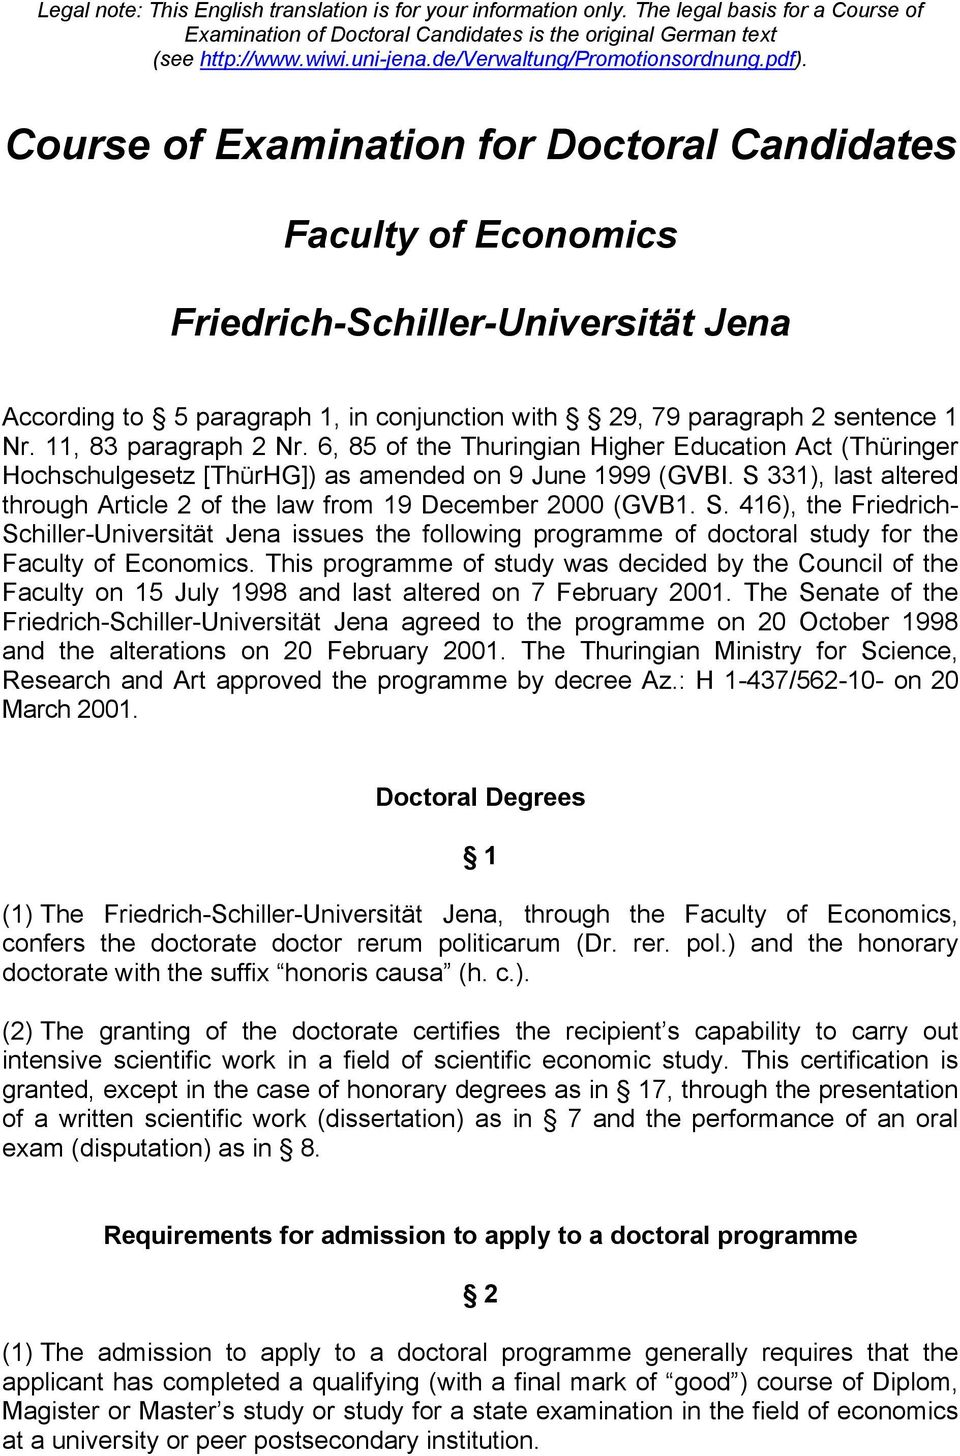 Course of Examination for Doctoral Candidates Faculty of Economics Friedrich-Schiller-Universität Jena According to 5 paragraph 1, in conjunction with 29, 79 paragraph 2 sentence 1 Nr.